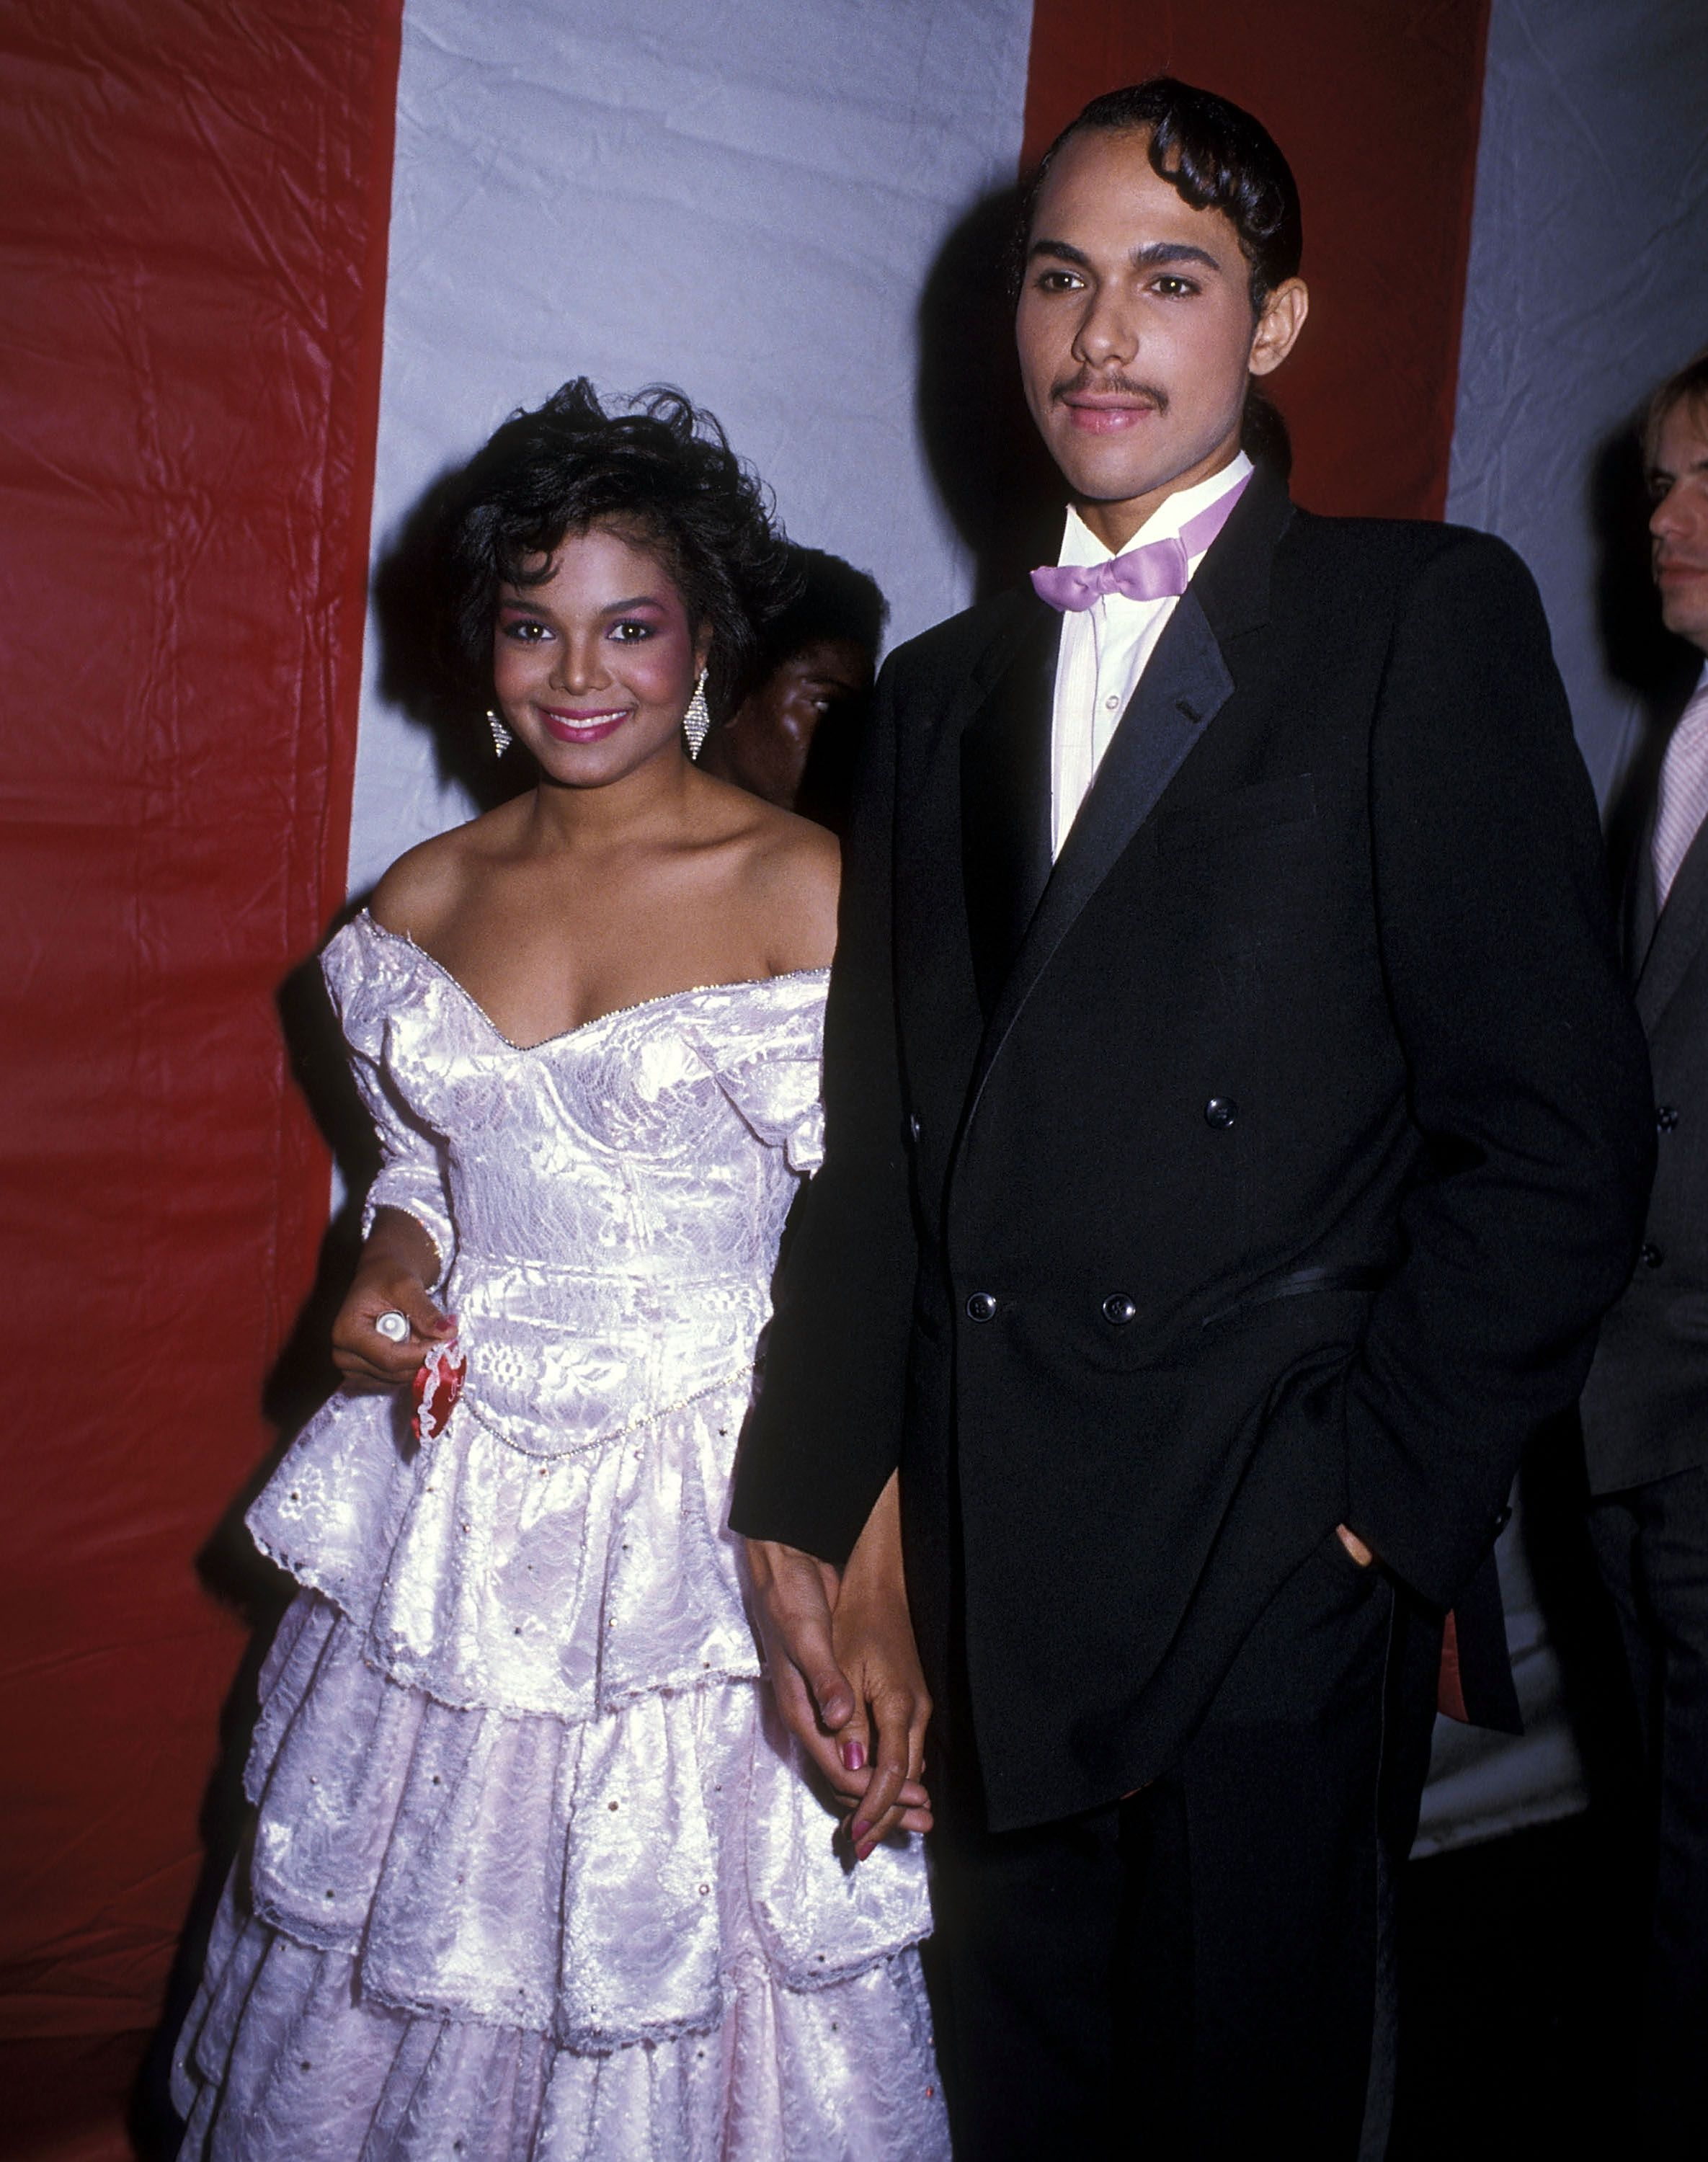 Janet Jackson and James DeBarge at the 12th Annual American Music Awards in 1985 | Source: Getty Images